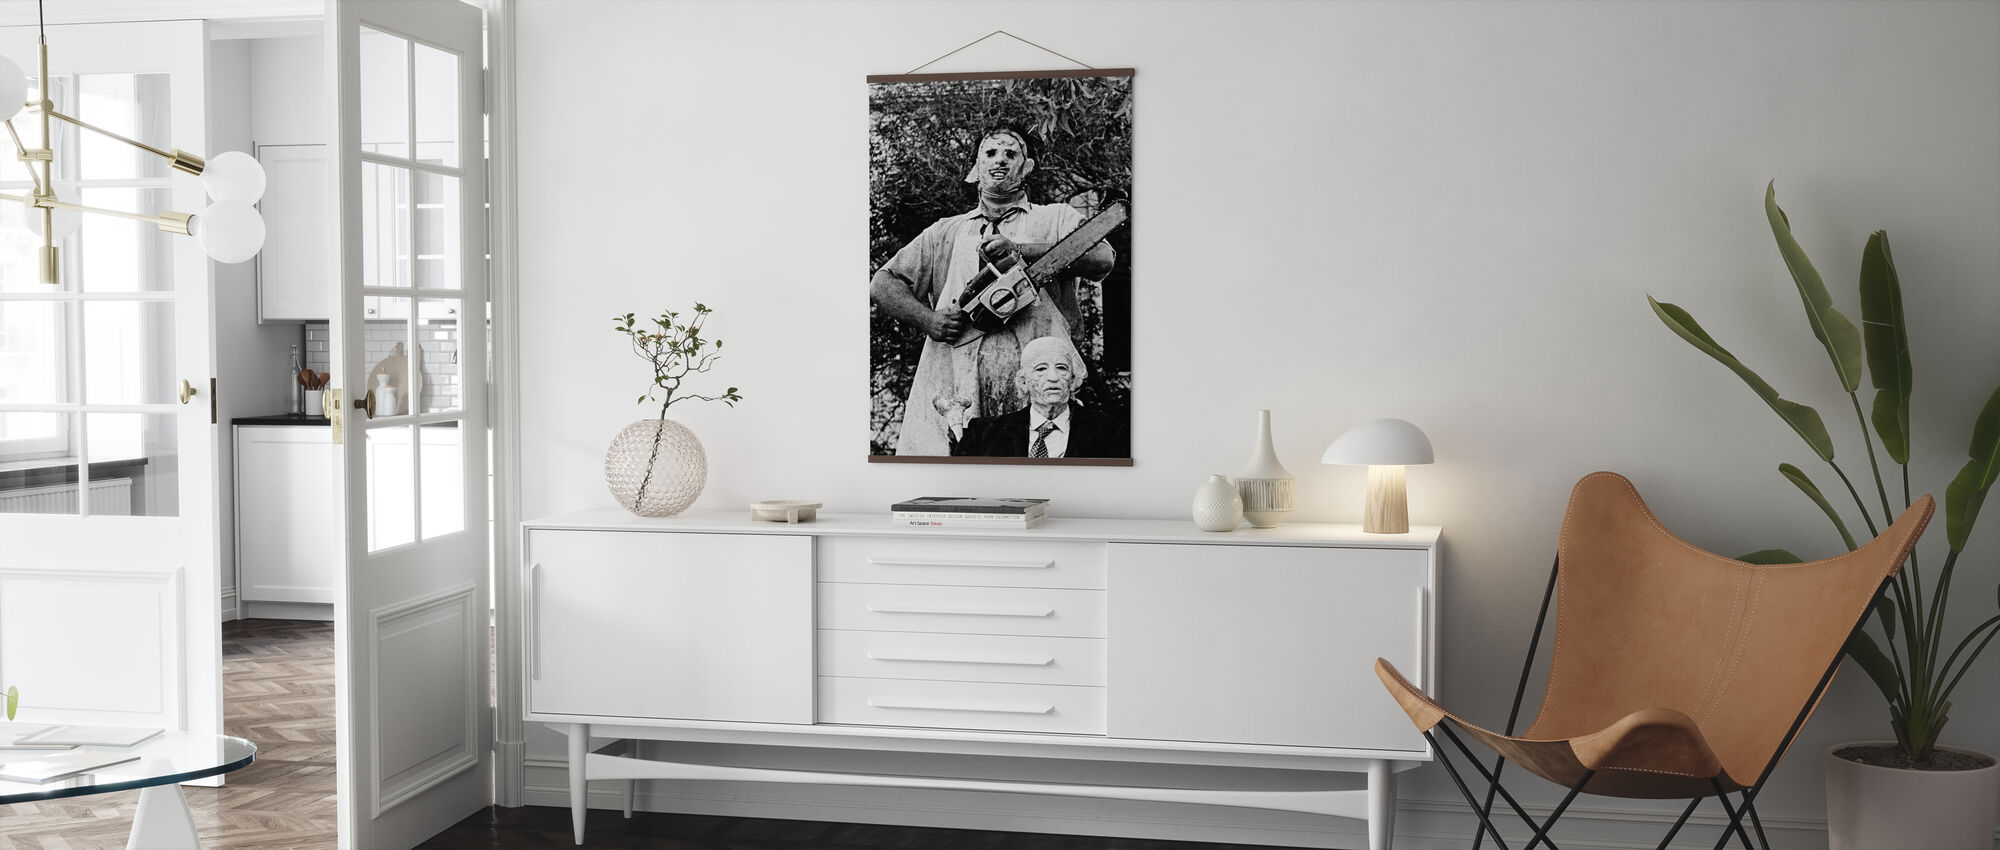 Leatherface - Poster - Living Room